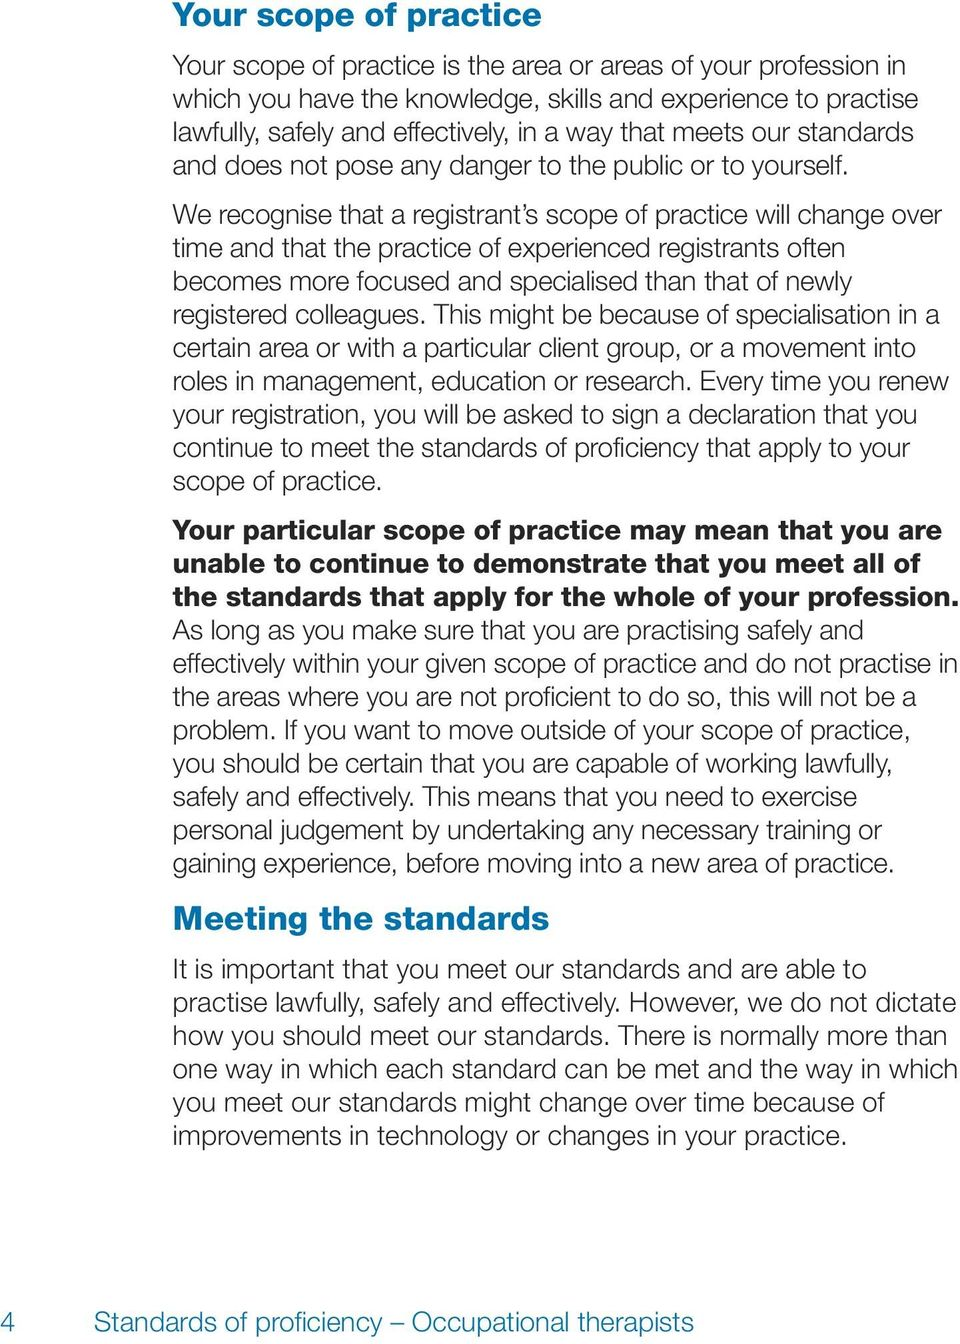 We recognise that a registrant s scope of practice will change over time and that the practice of experienced registrants often becomes more focused and specialised than that of newly registered